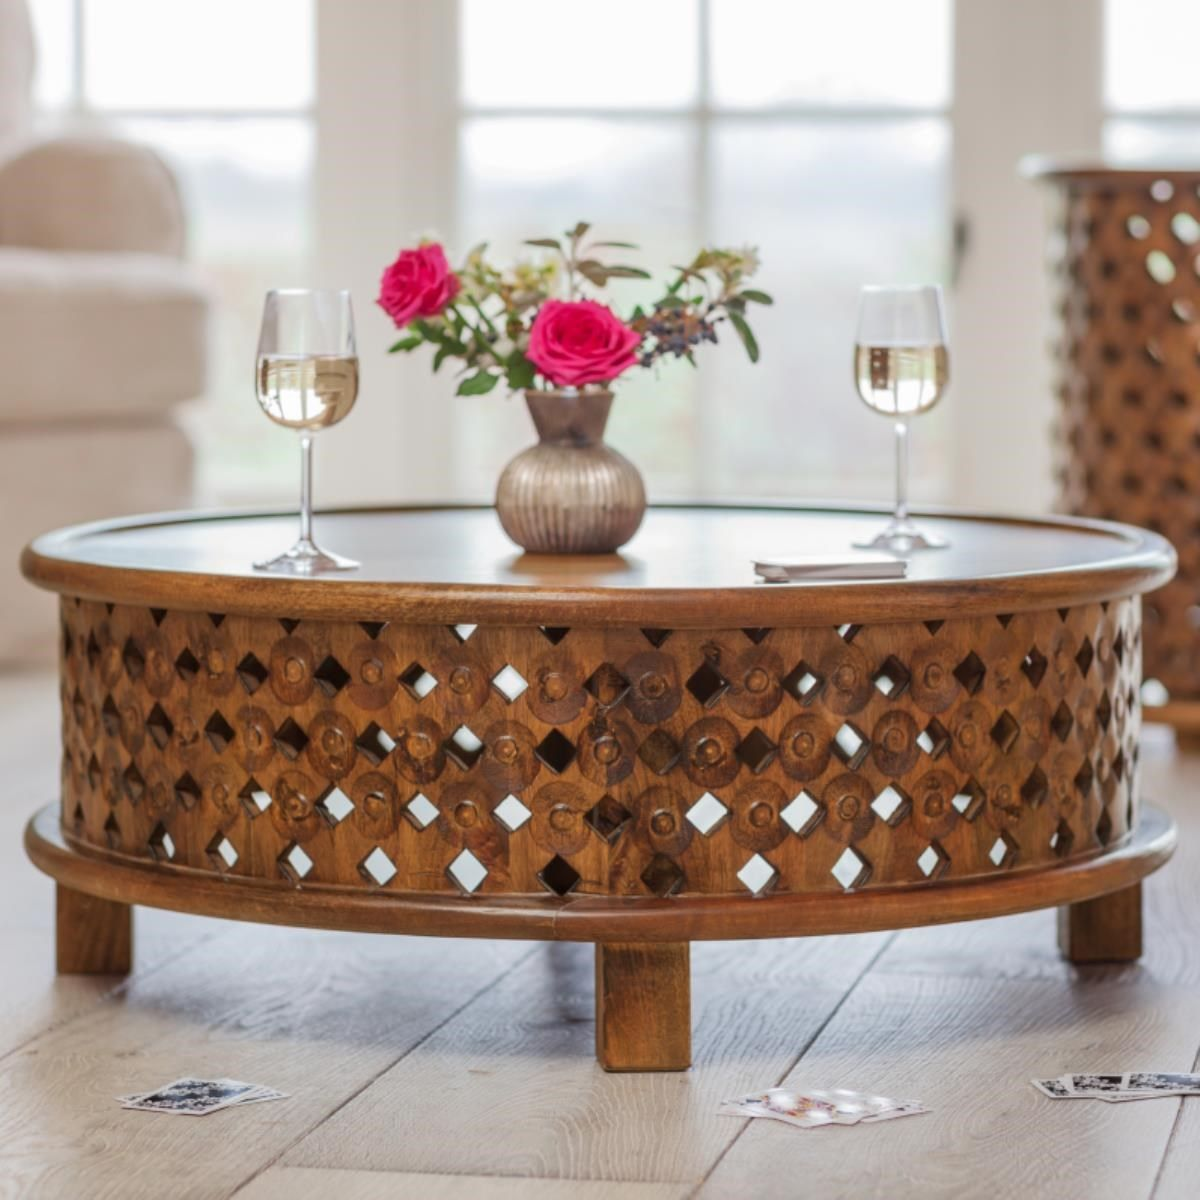 Exotic Lattice Coffee Table Made From Sustainable Mango Wood With Warm  Waxed Finish. Circular Design For Eastern Display. Authentic, Traditional  Indian ...